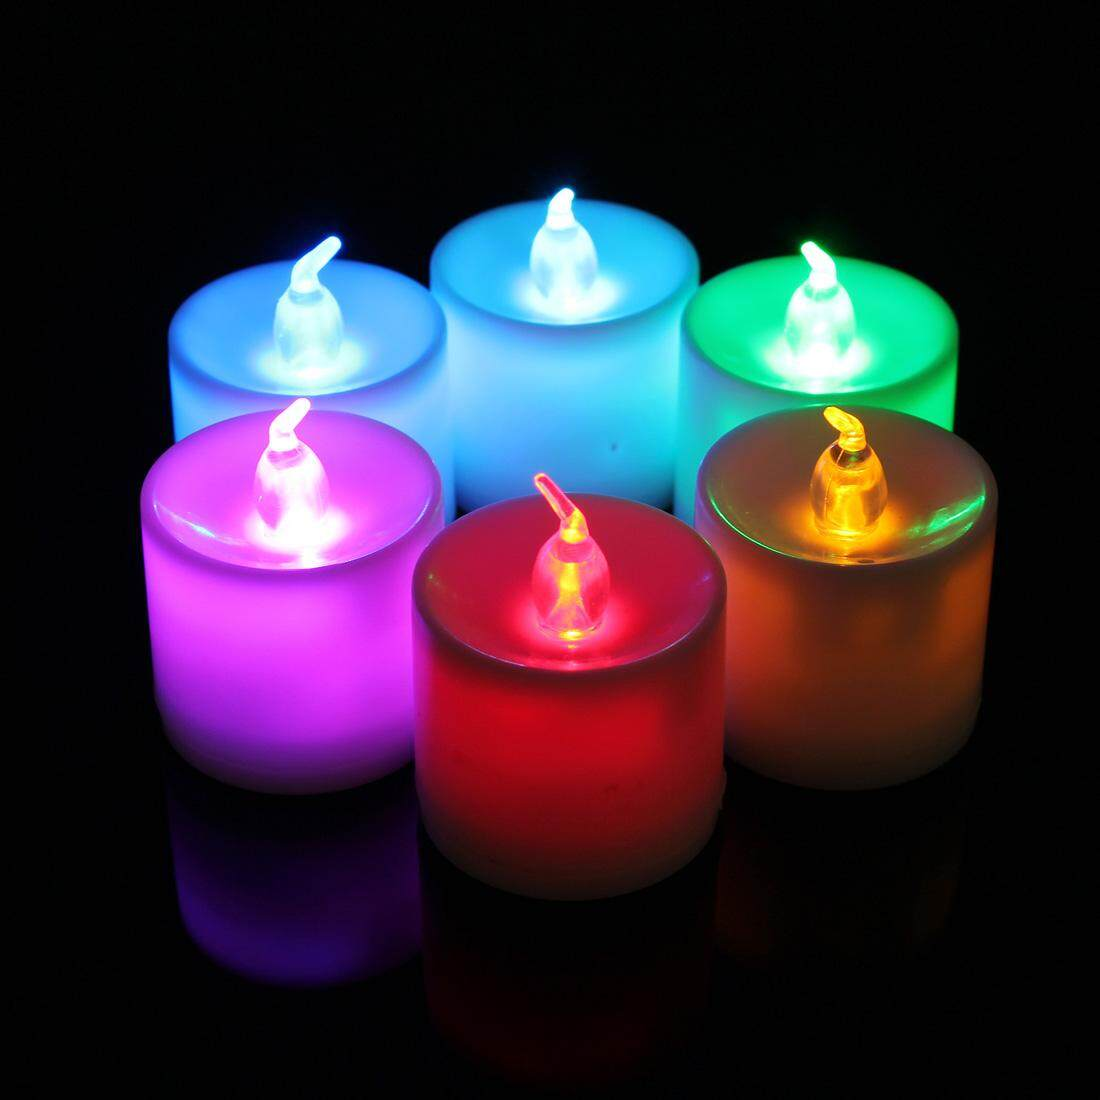 Khuyến mãi Flameless LED Tealight Candles Light Battery Operated For Home Wedding Party chỉ hôm nay